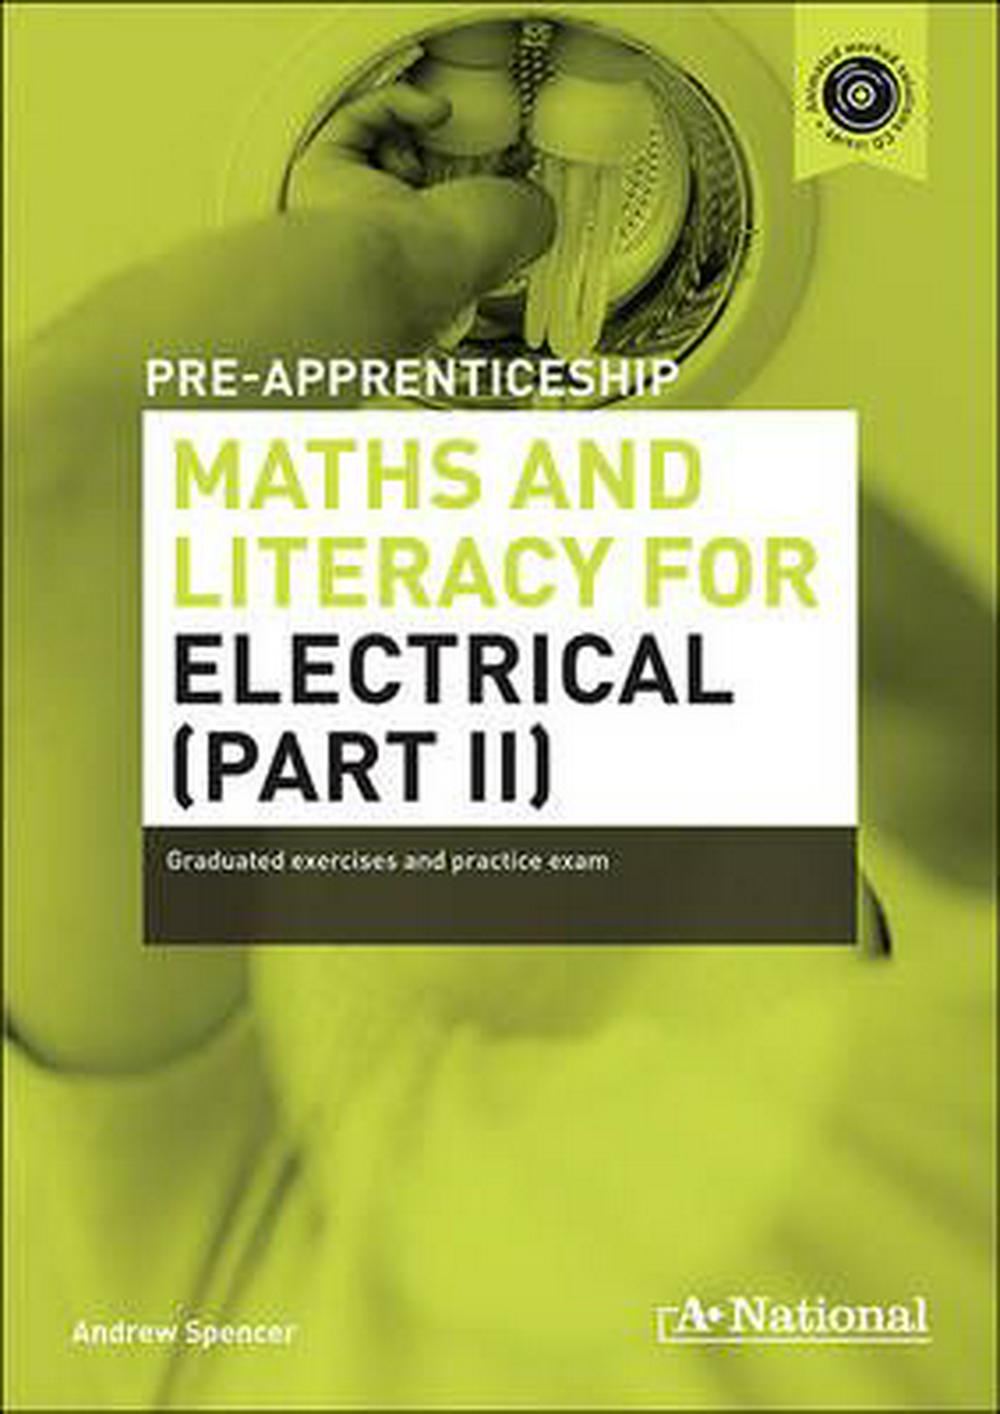 Pre-Apprenticeship Maths and Literacy for Electrical (Part II)